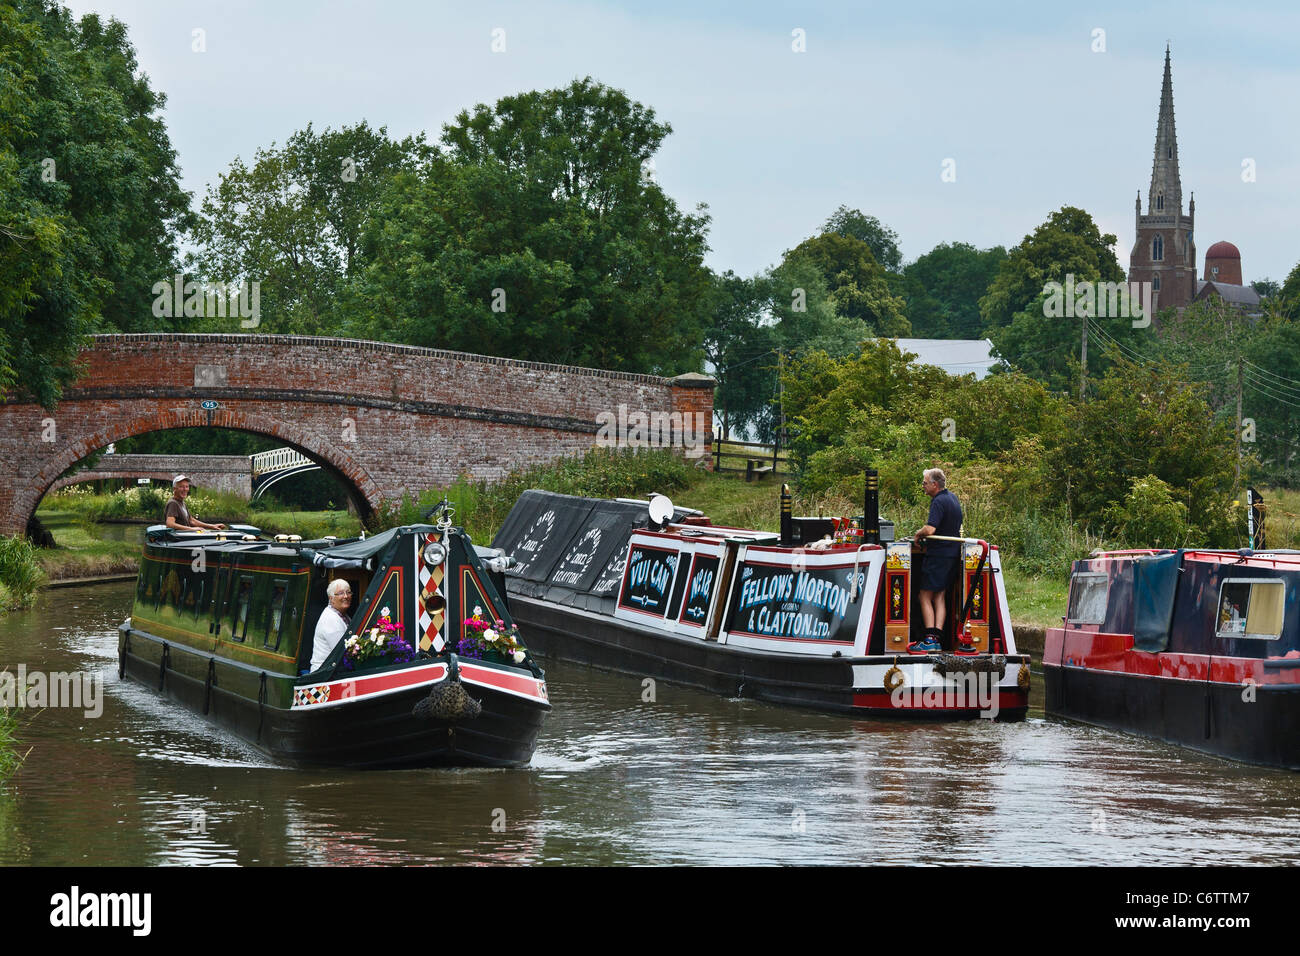 The Oxford Canal at Braunston, Northamptonshire - Stock Image